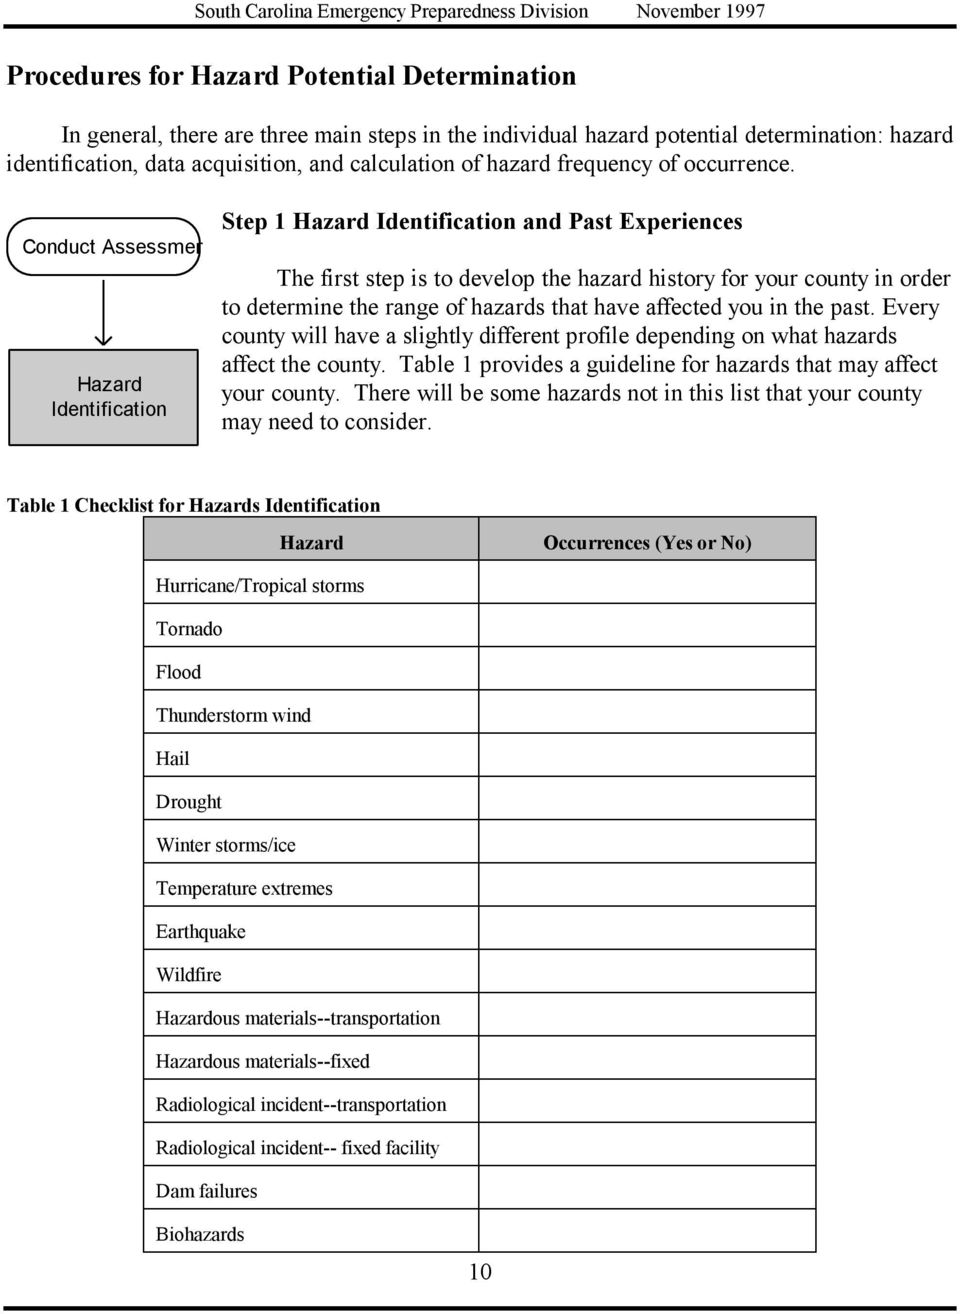 Conduct Assessment Hazard Identification Step 1 Hazard Identification and Past Experiences The first step is to develop the hazard history for your county in order to determine the range of hazards